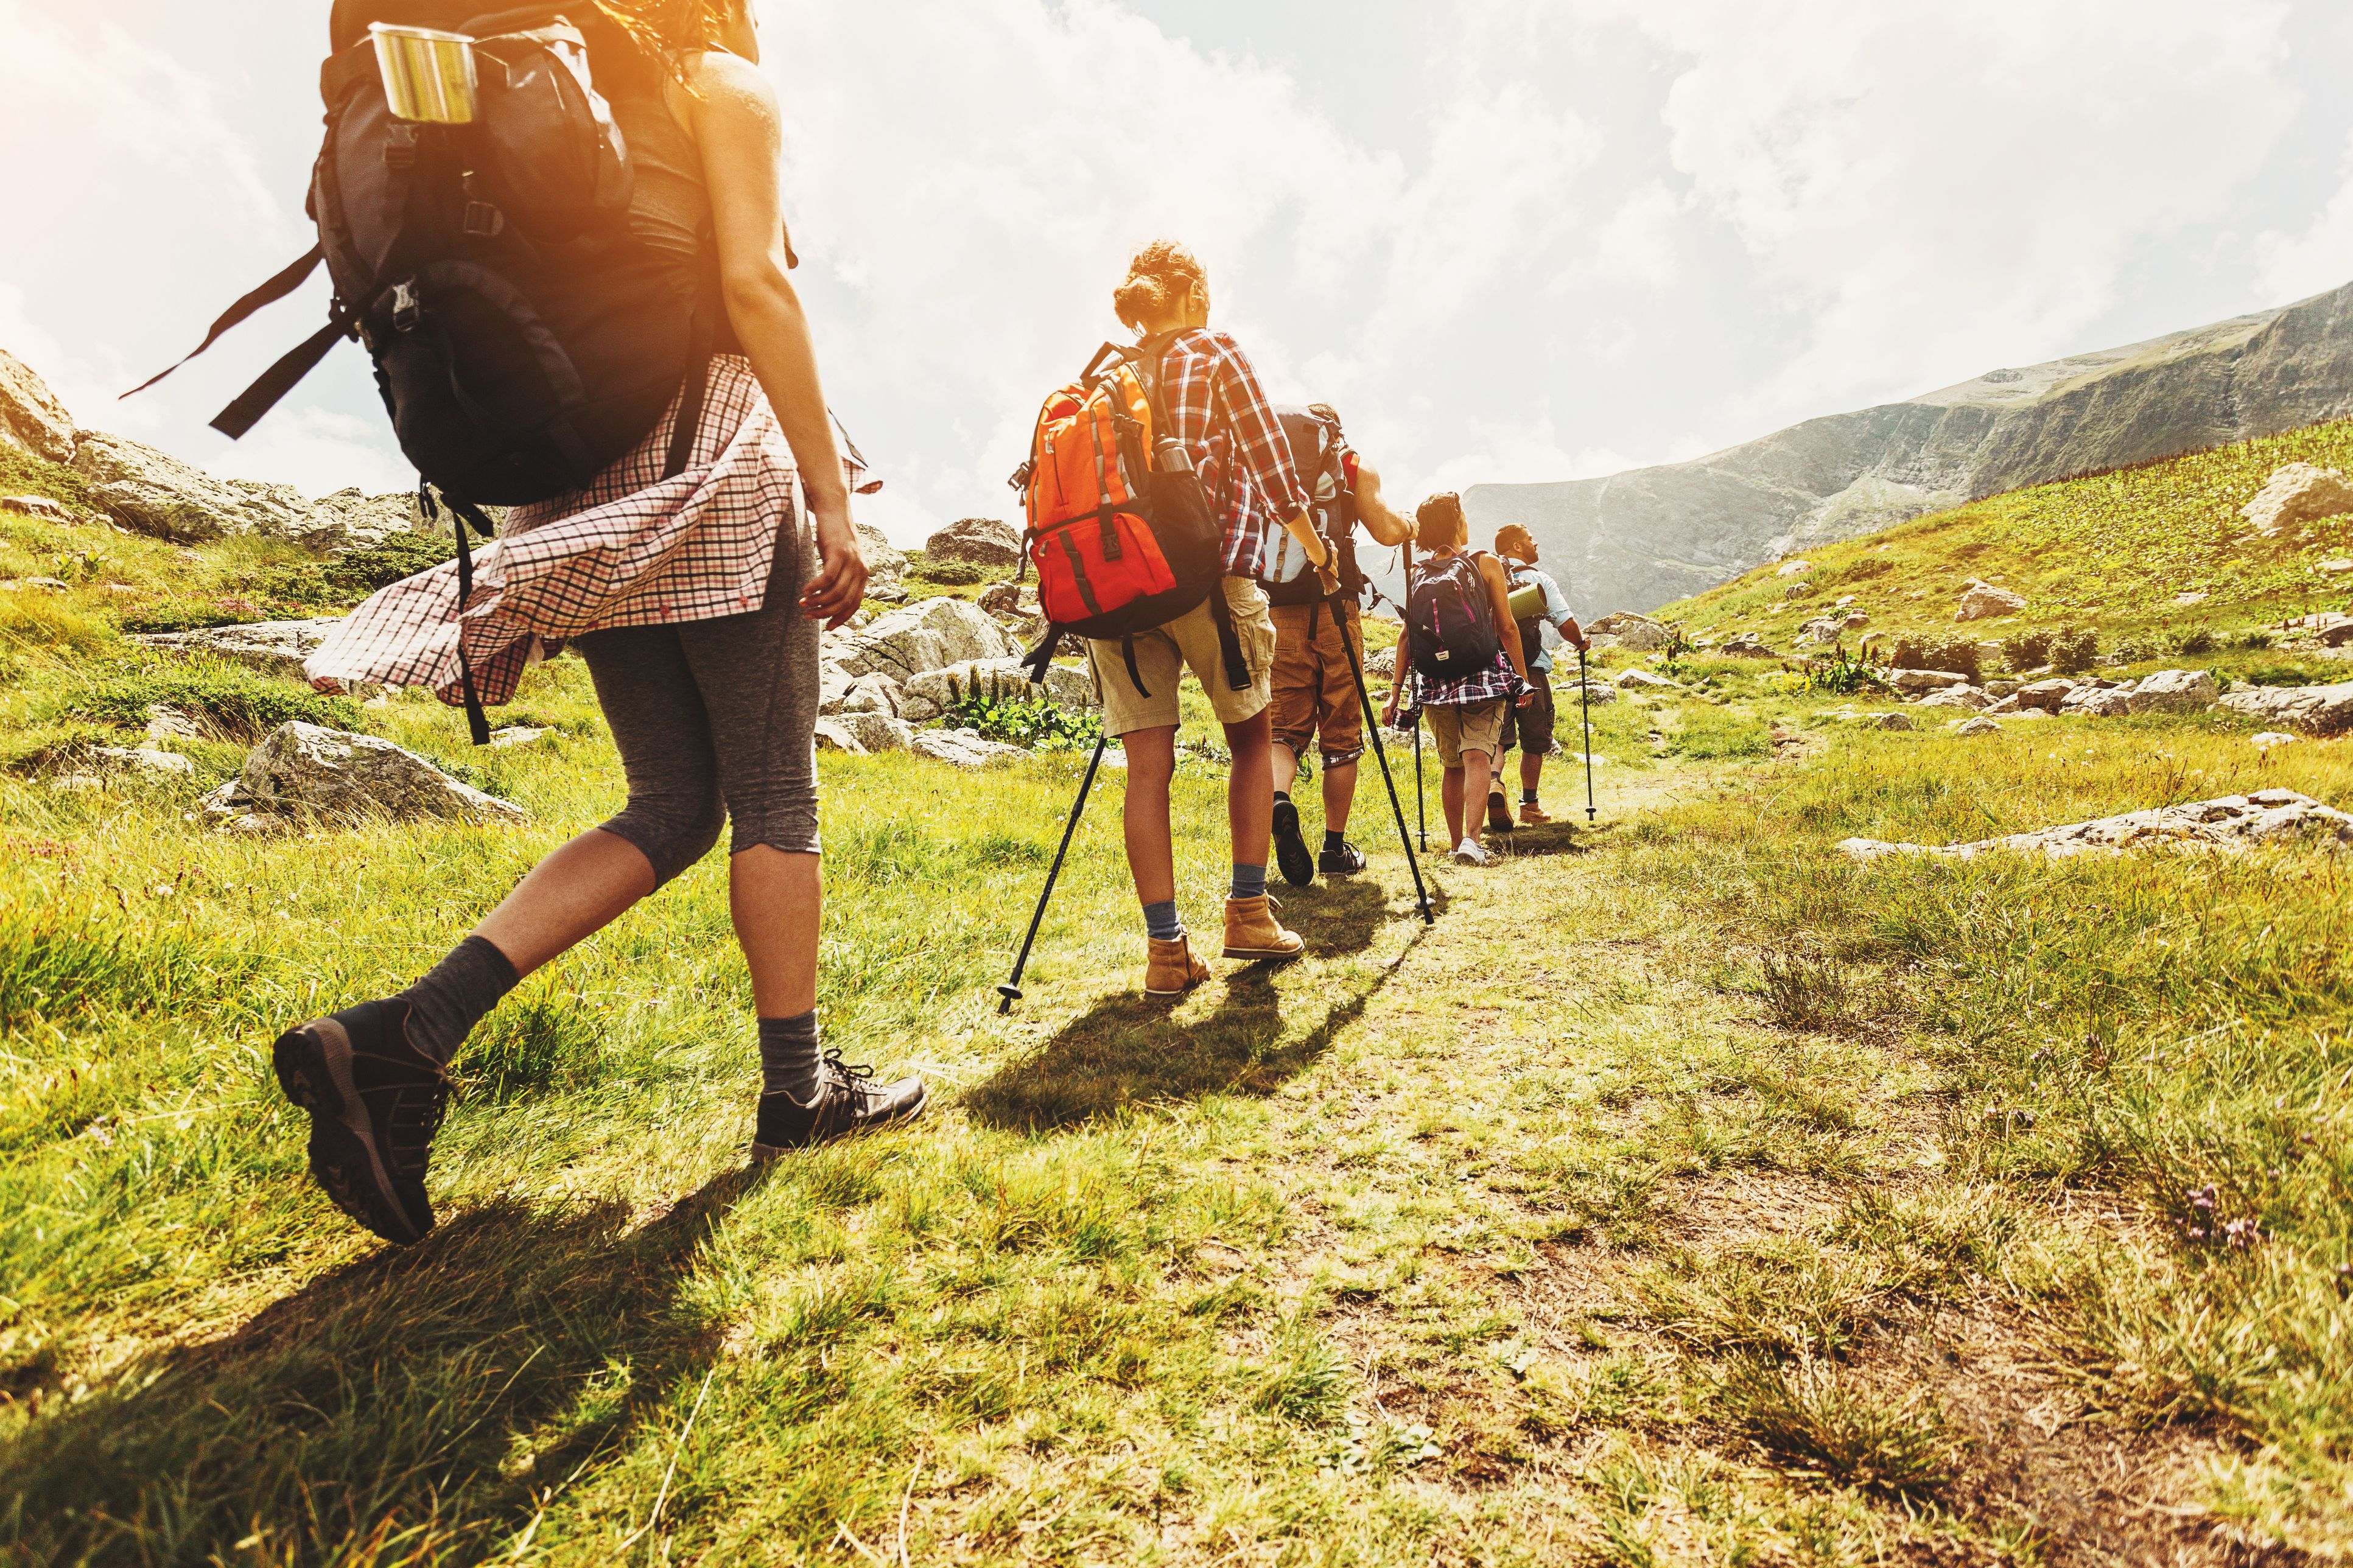 Where to Buy Inexpensive Hiking Gear